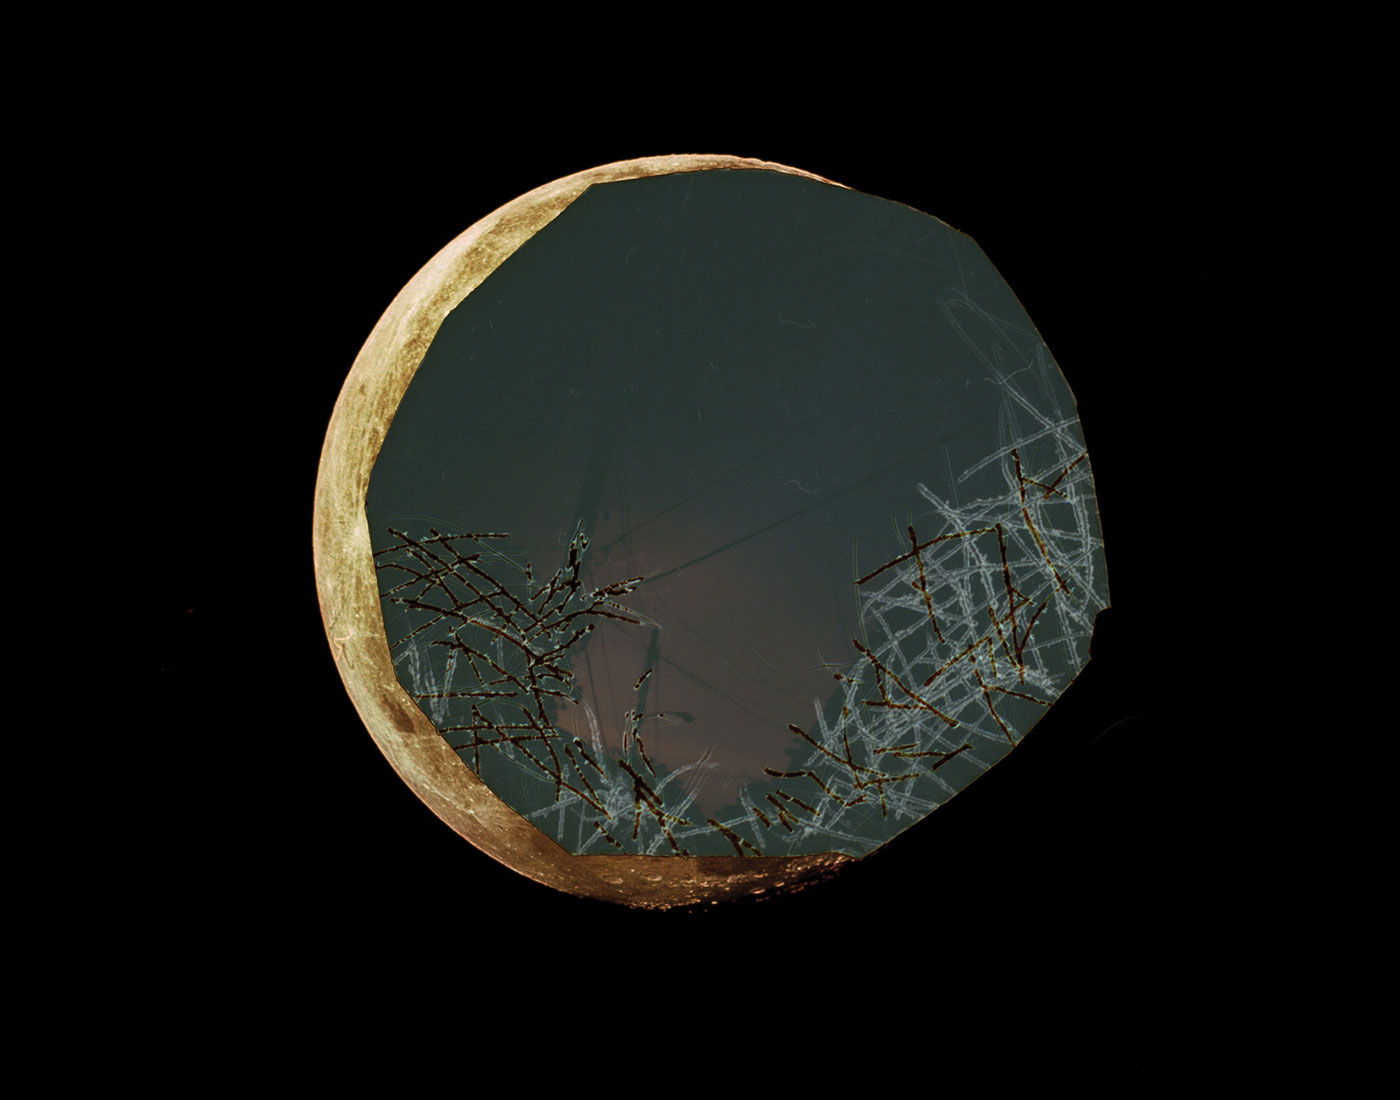 Kennedy N. Johnson - Moon (from the Virtual Matter series)